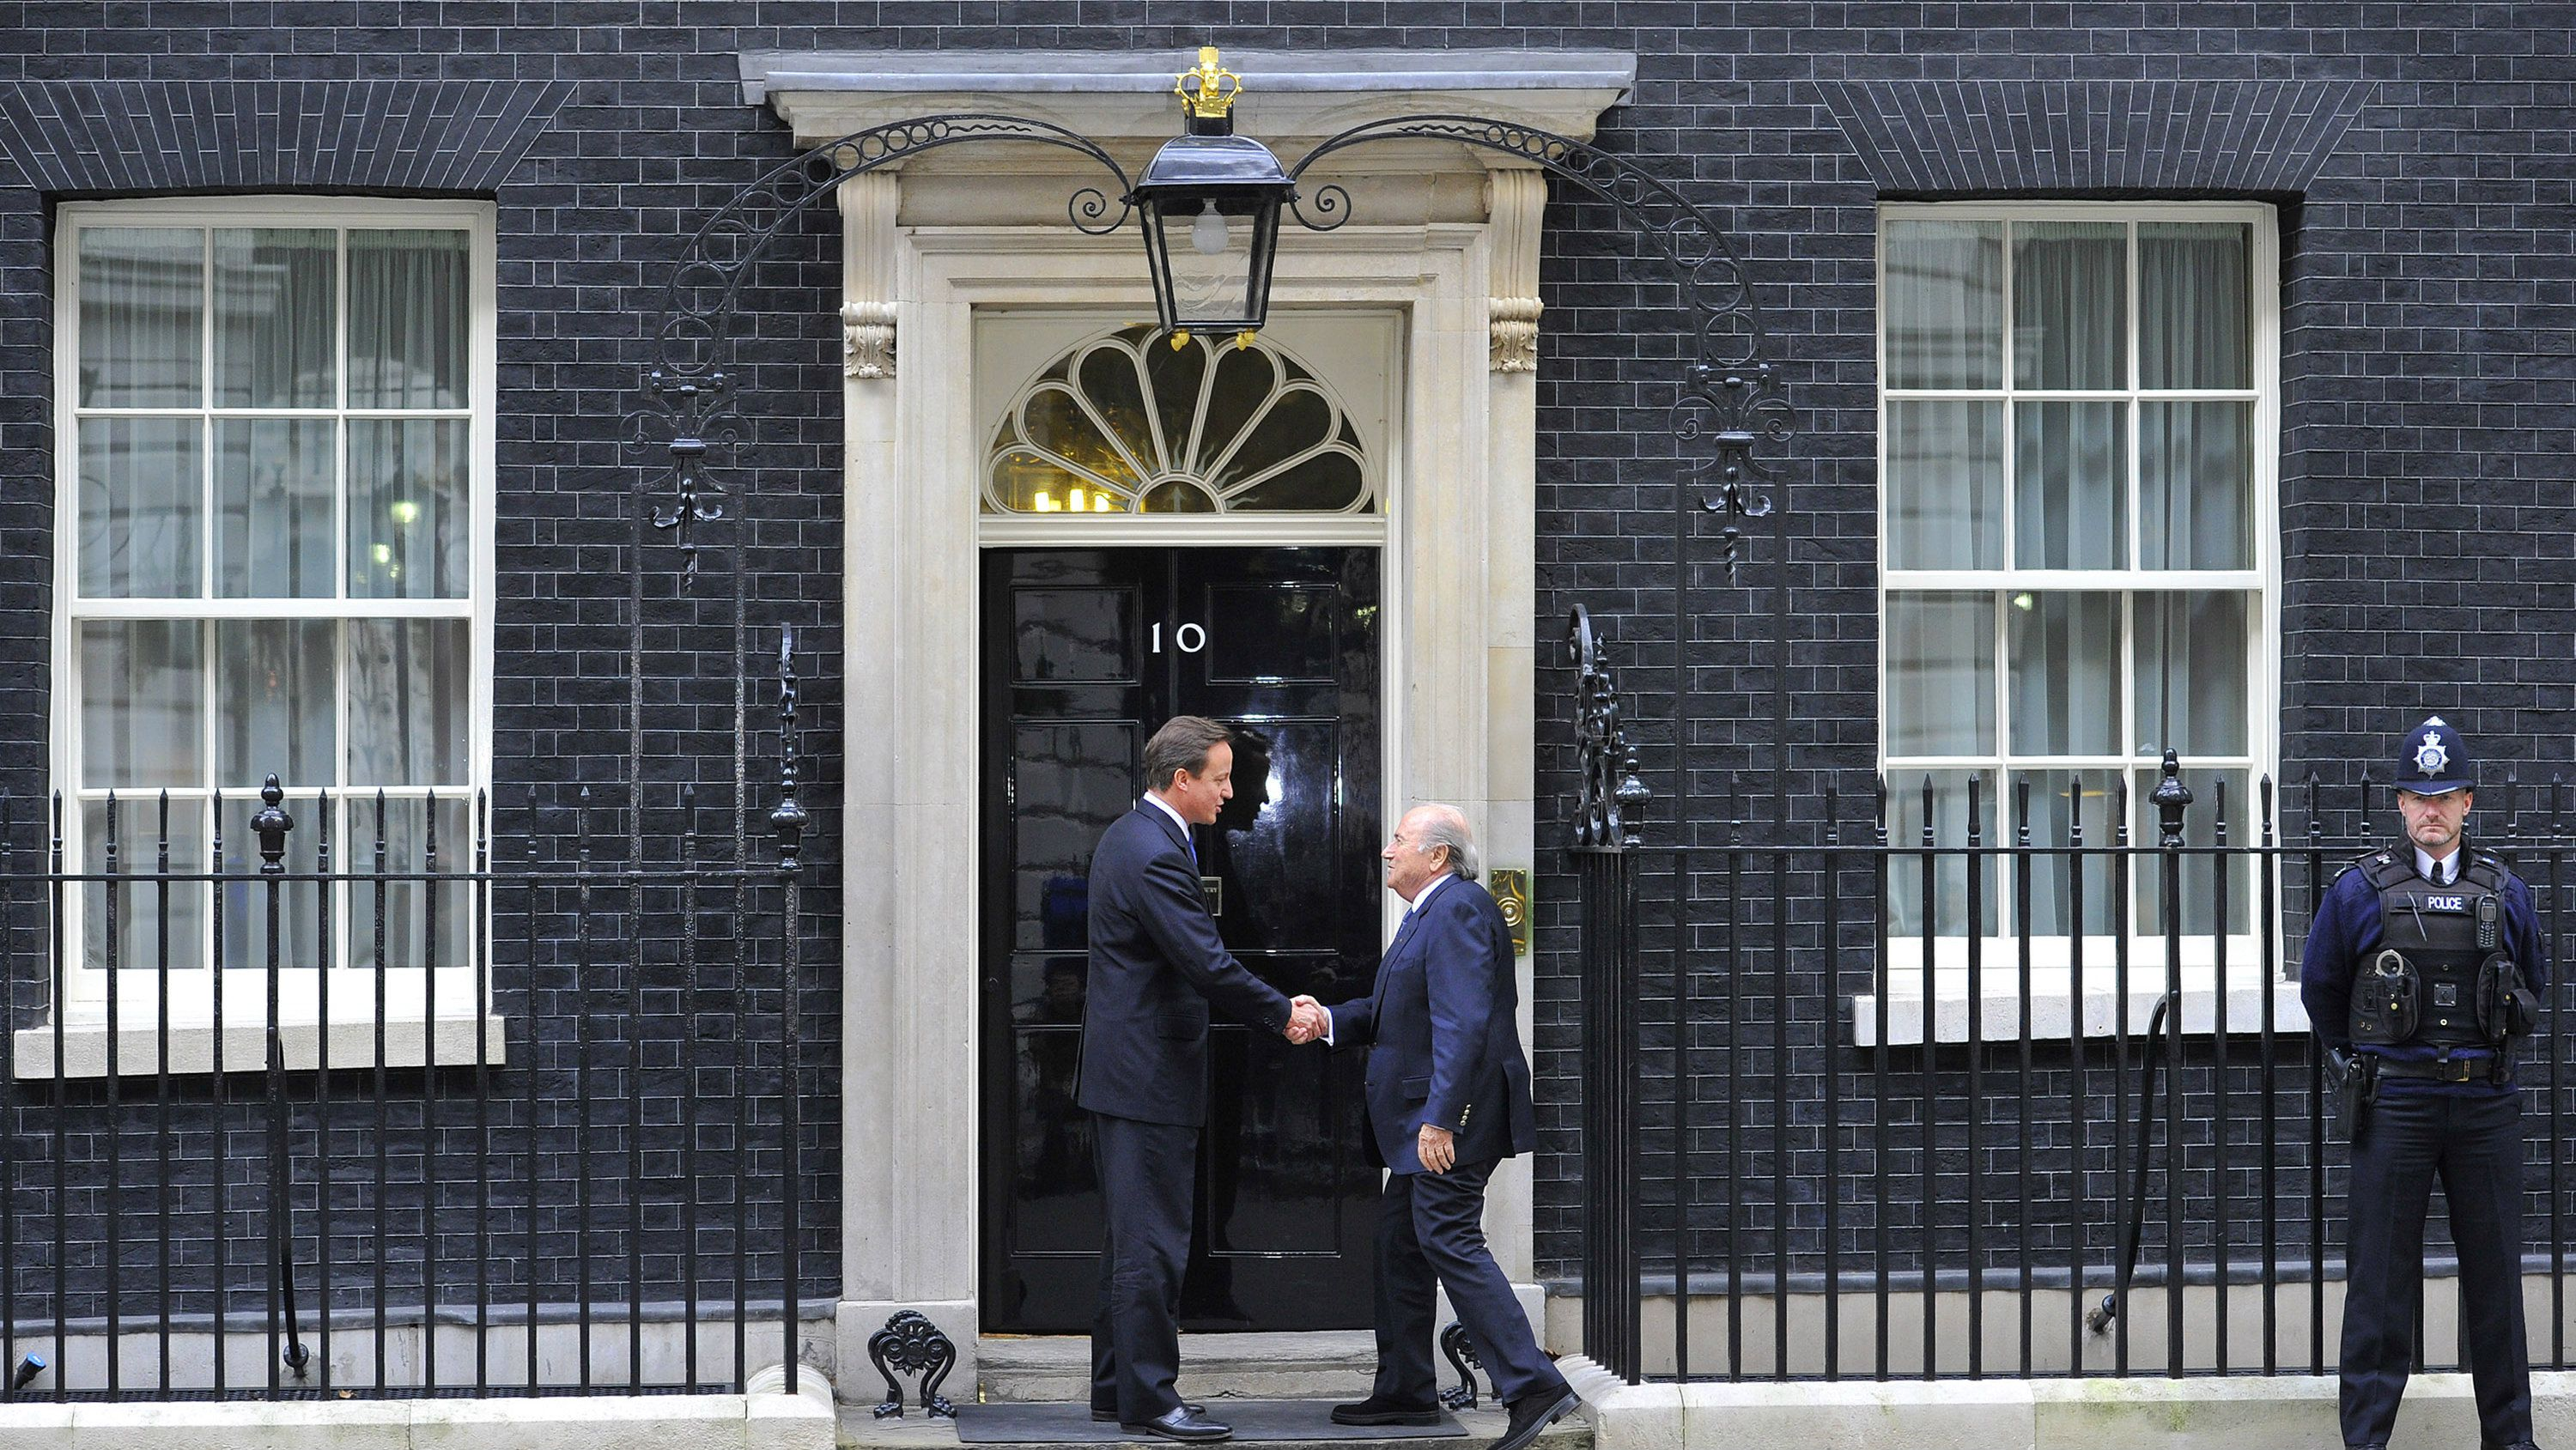 Sepp Blatter meets with David Cameron at 10 Downing St